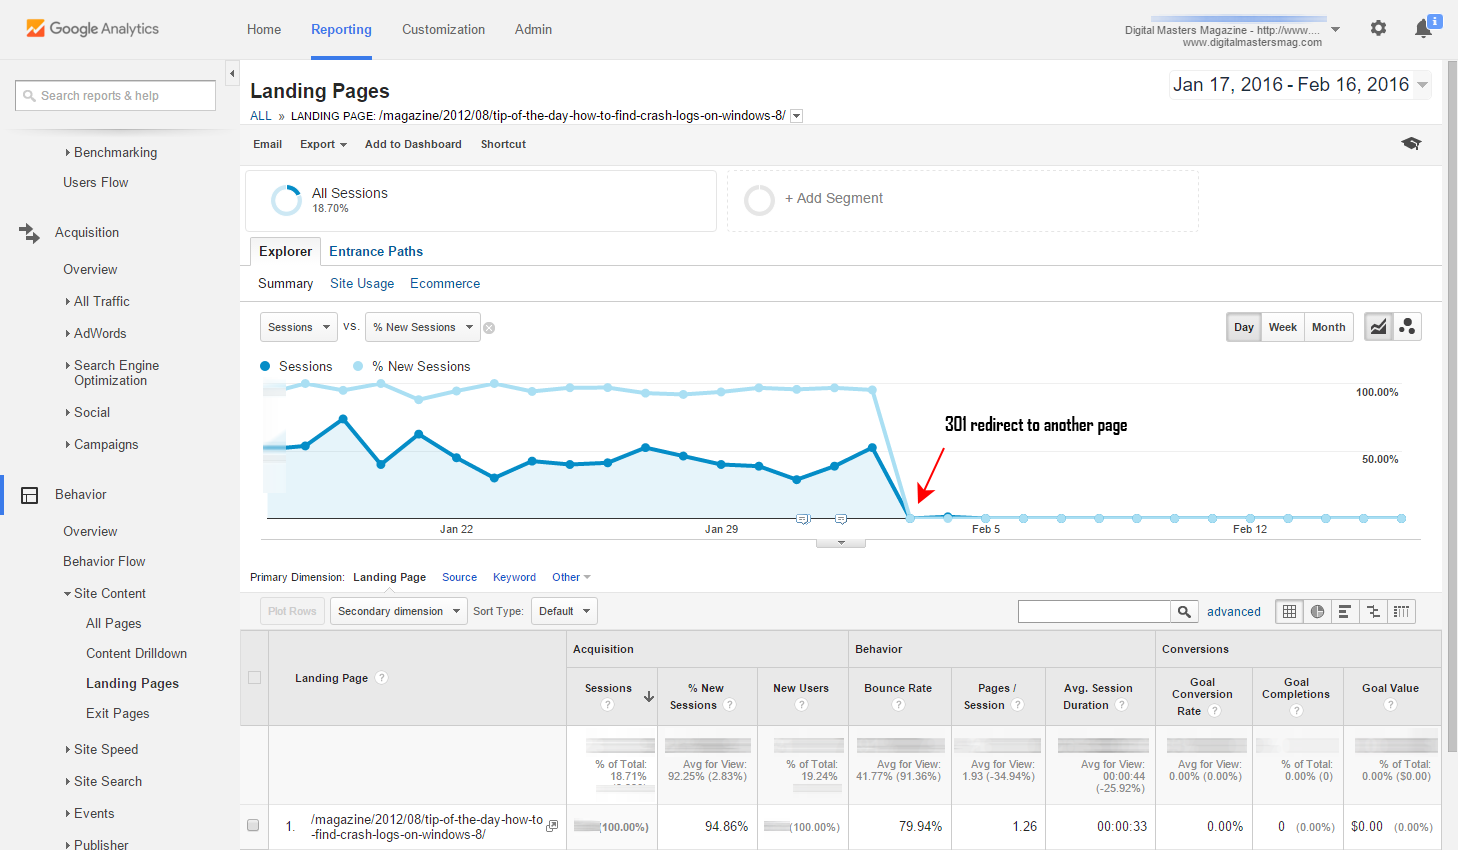 Effects of a 301 redirect in Google Analytics: the old page no longer receives visitors after the redirect